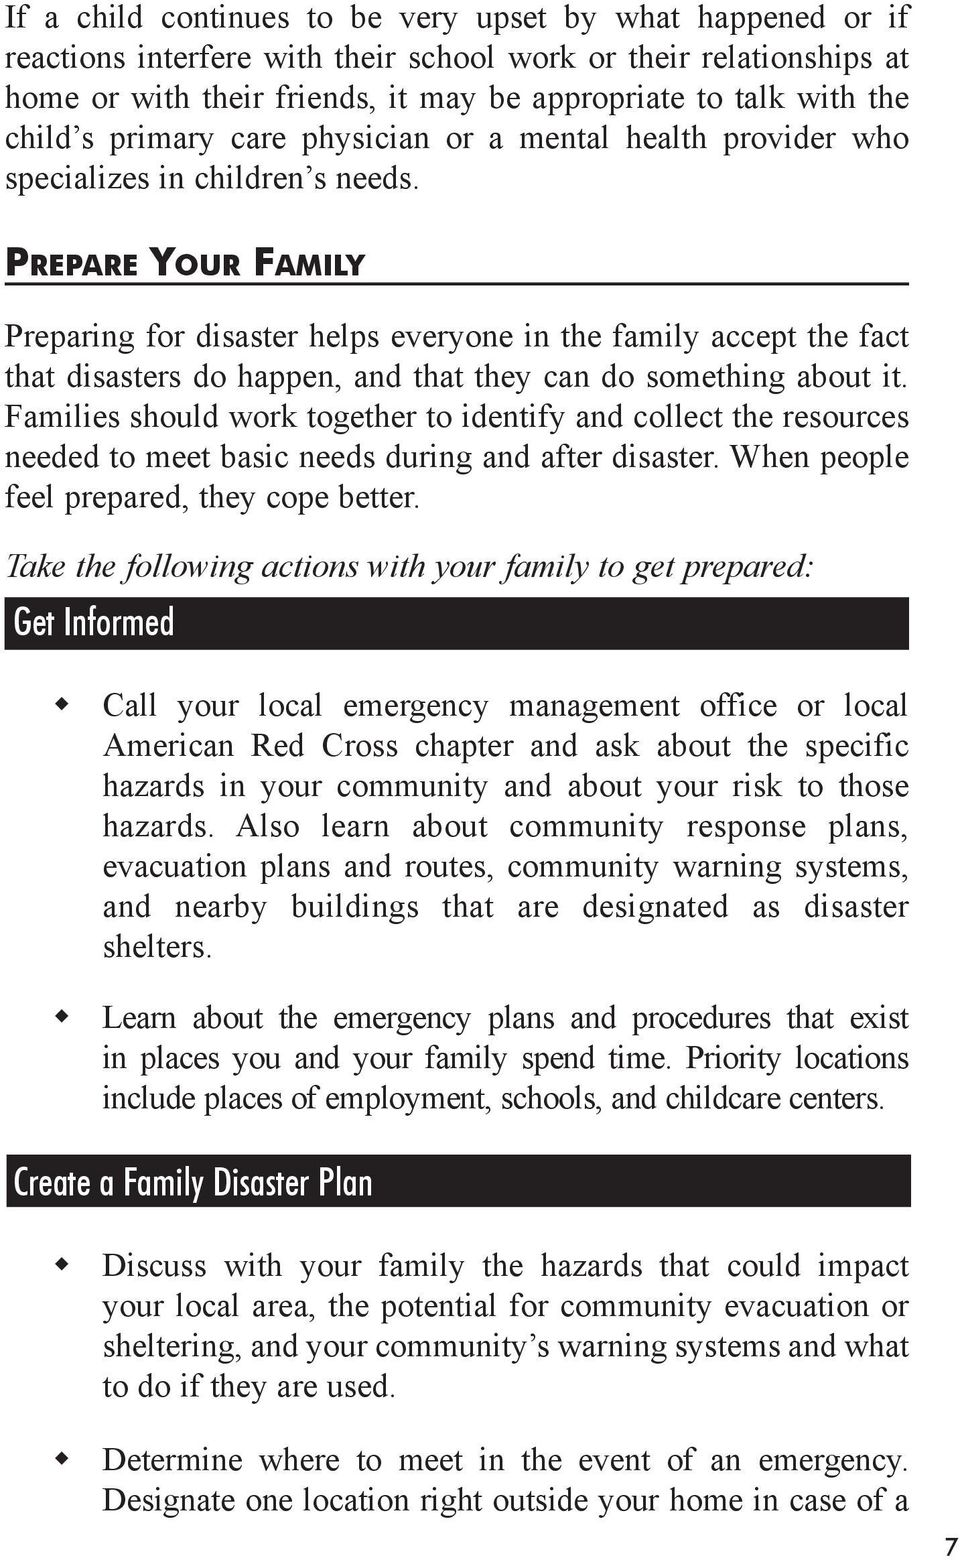 PREPARE YOUR FAMILY Preparing for disaster helps everyone in the family accept the fact that disasters do happen, and that they can do something about it.